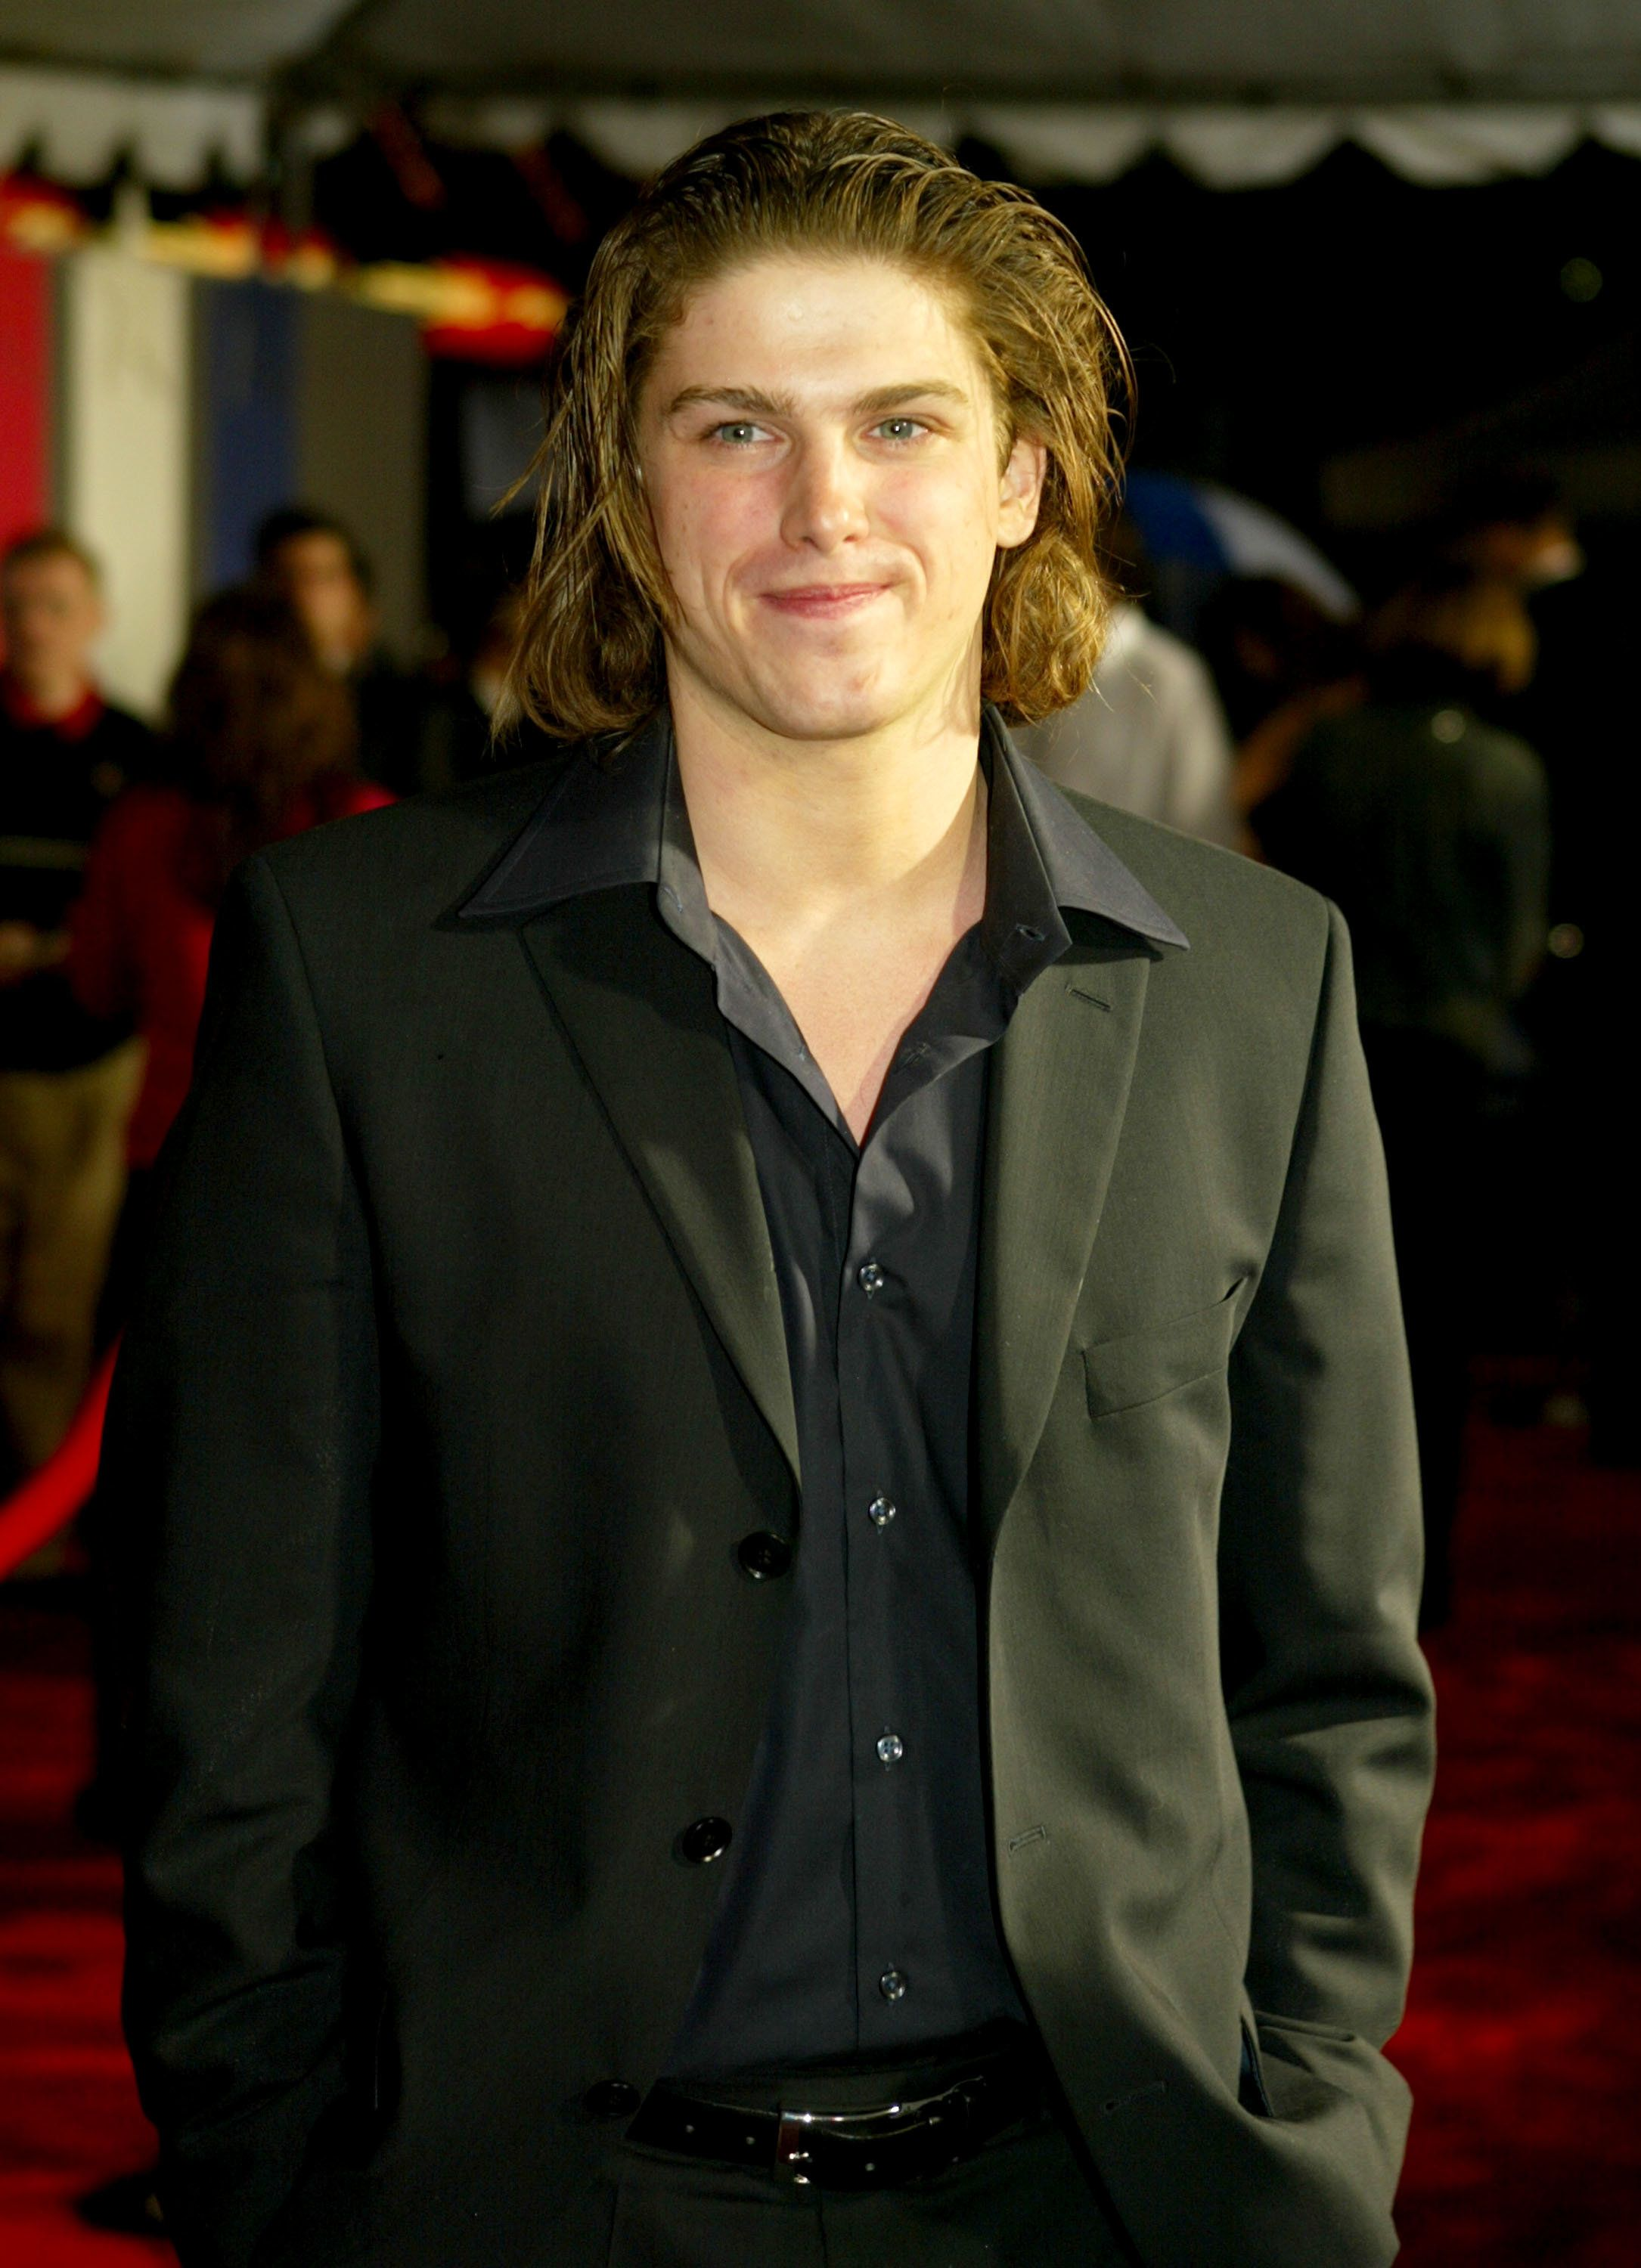 HOLLYWOOD, CA - FEBRUARY 2:   Actor Michael Mantenuto arrives to the movie premiere of 'Miracle' at Grauman's Chinese Theater on February 2nd, 2004 in Hollywood, California. (Photo by Kevin Winter/Getty Images)